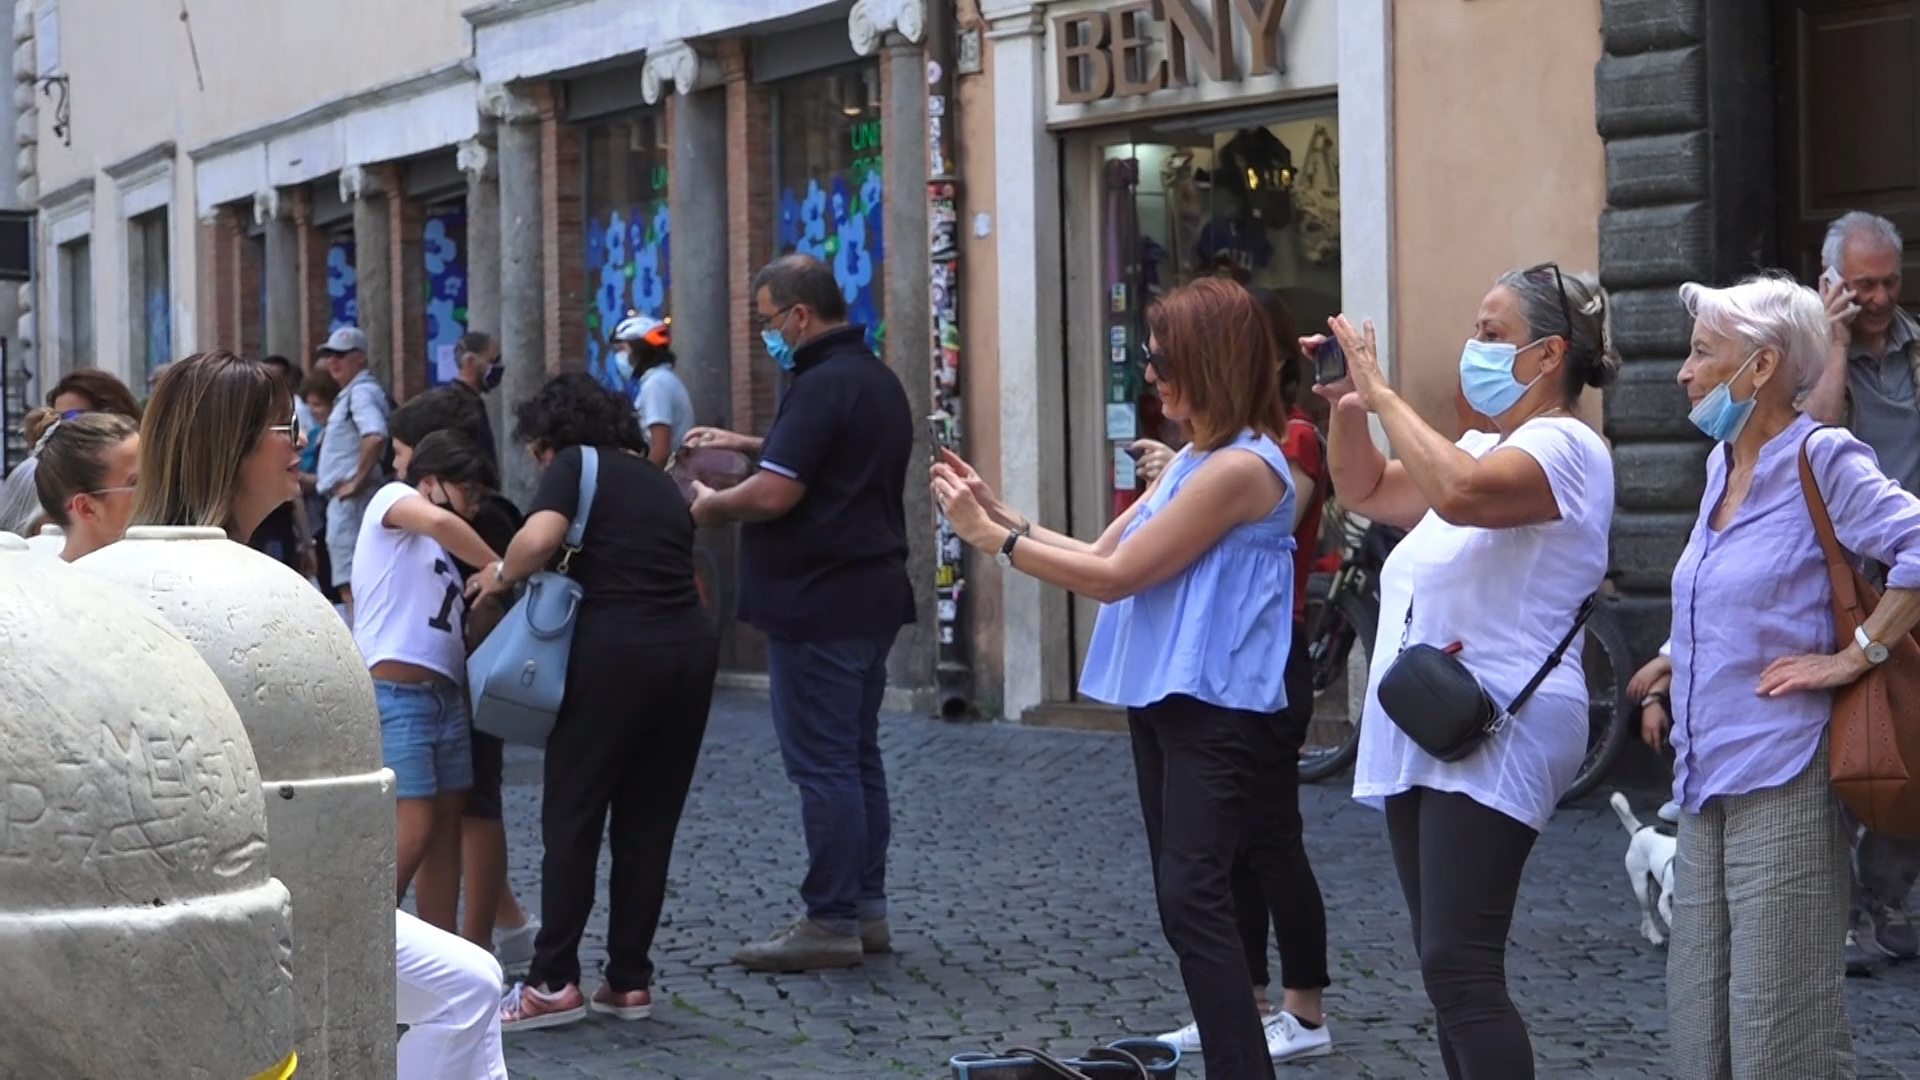 Italy urges tourists to act responsibly to keep COVID-19 rates low